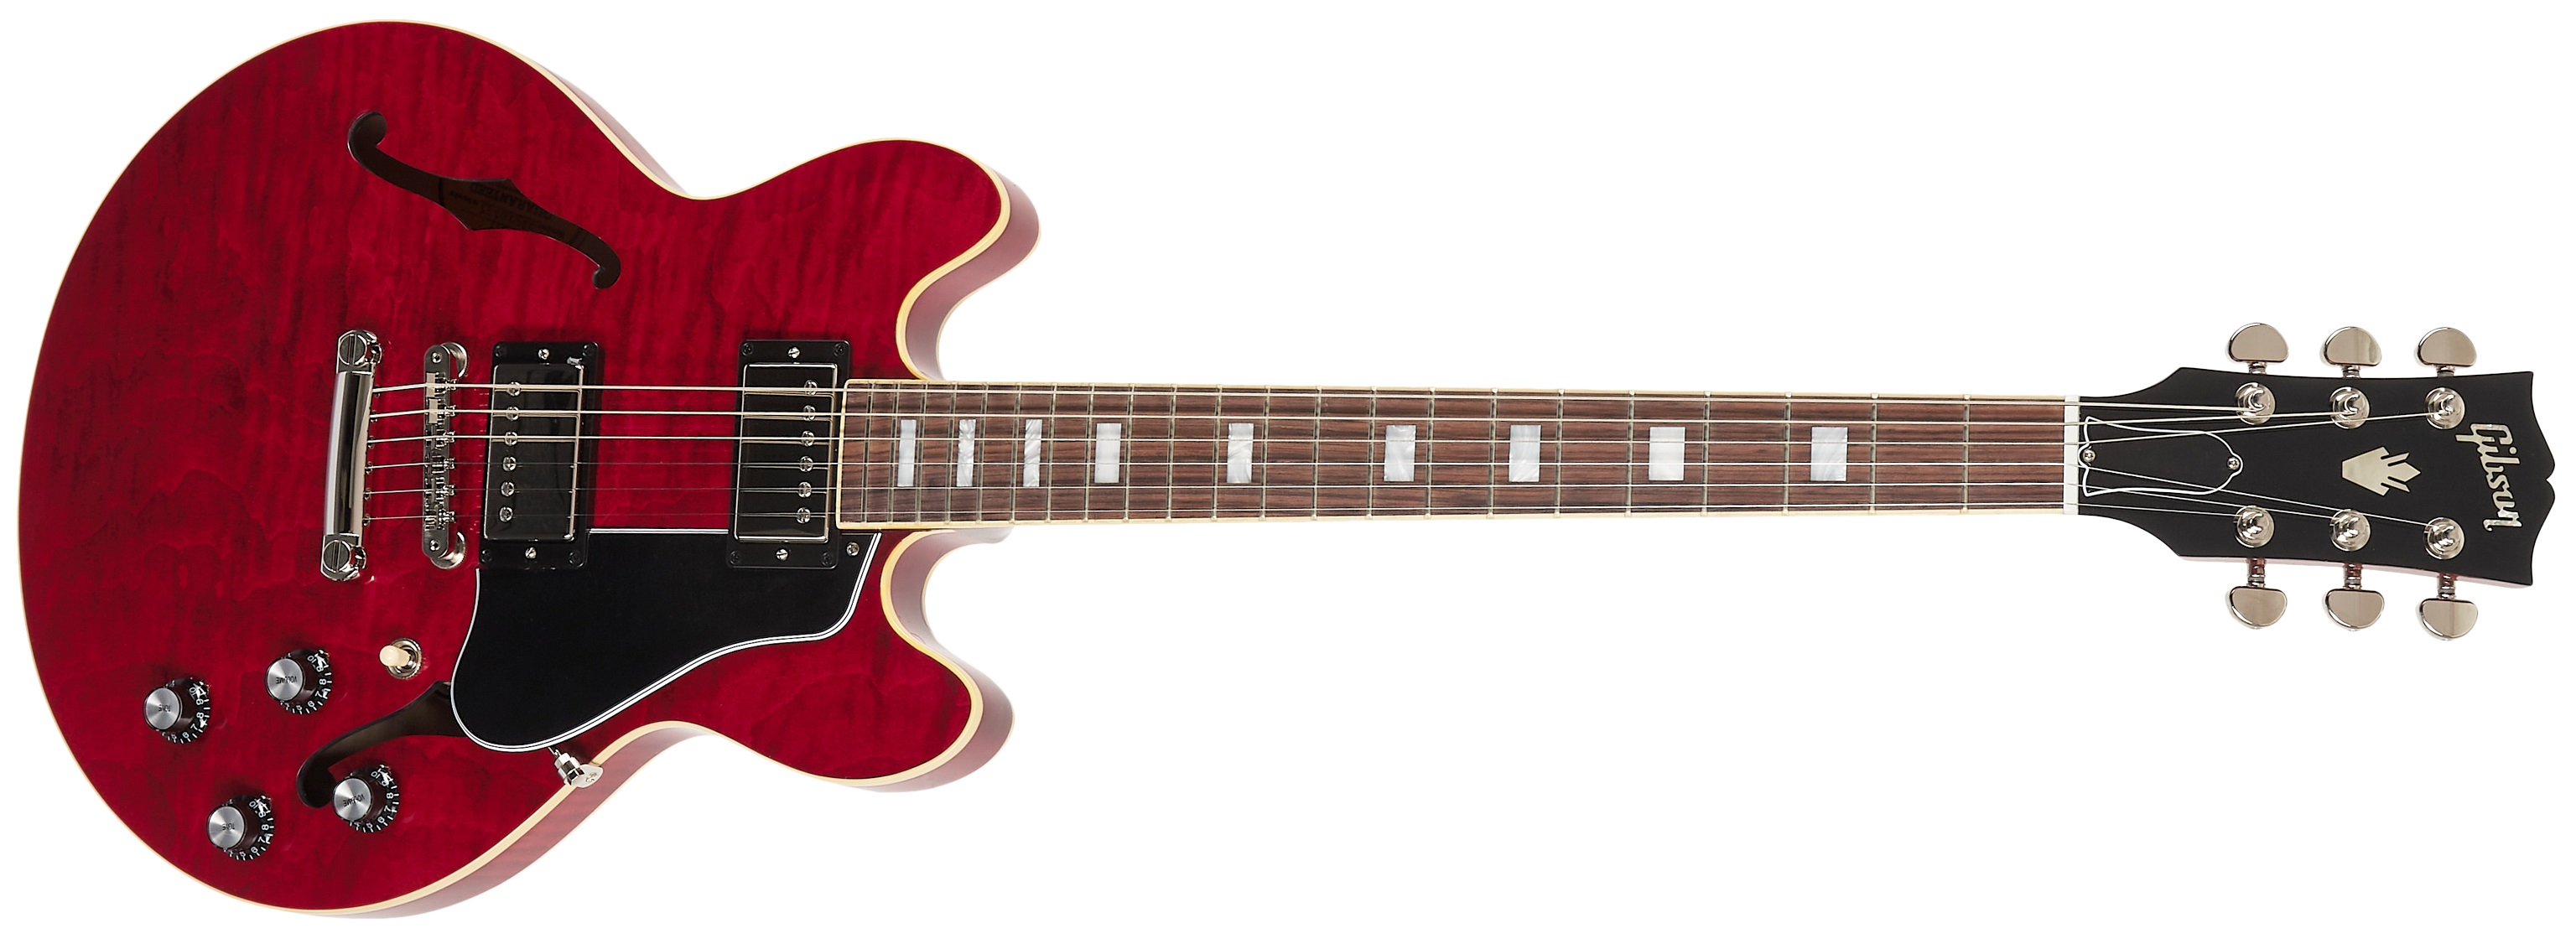 Gibson ES-339 Figured Sixties Cherry